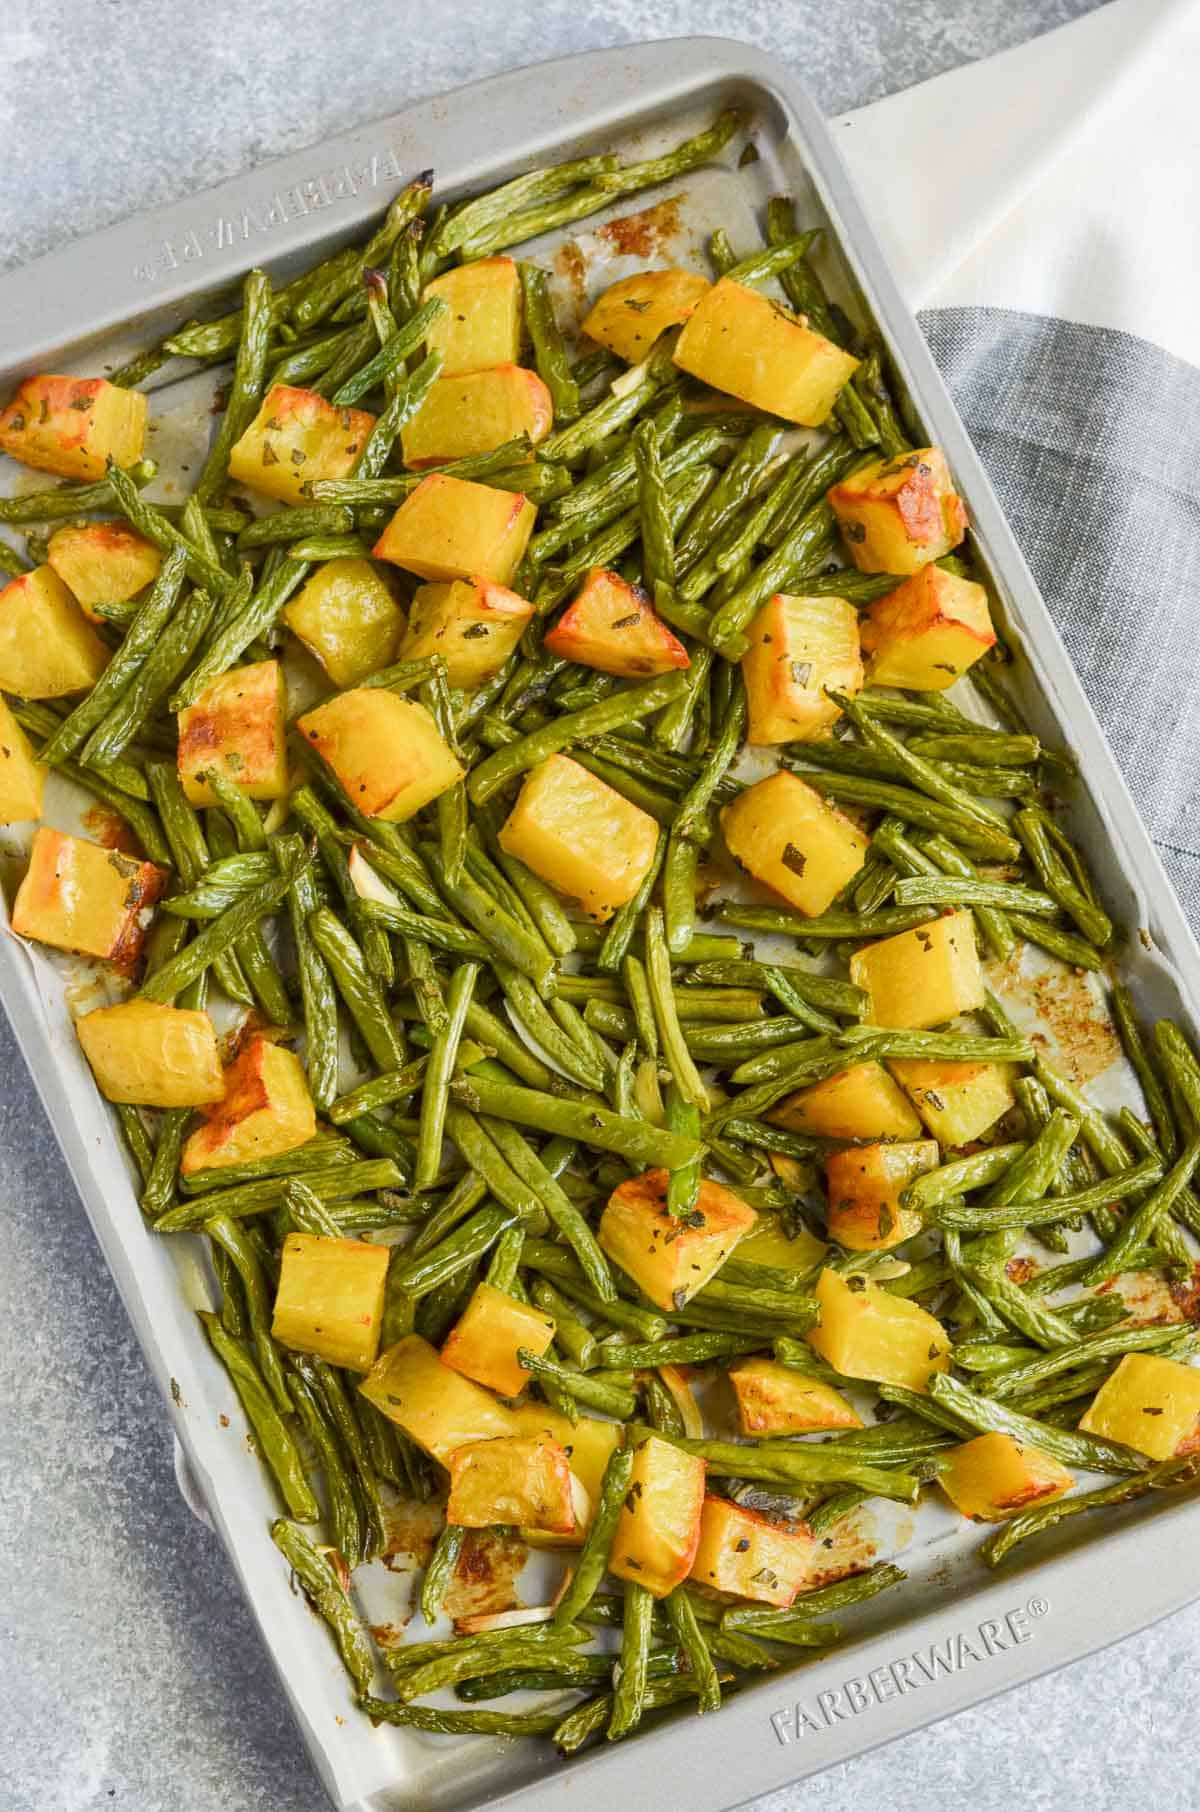 oven roasted potatoes, green beans and sage in the sheet pan.